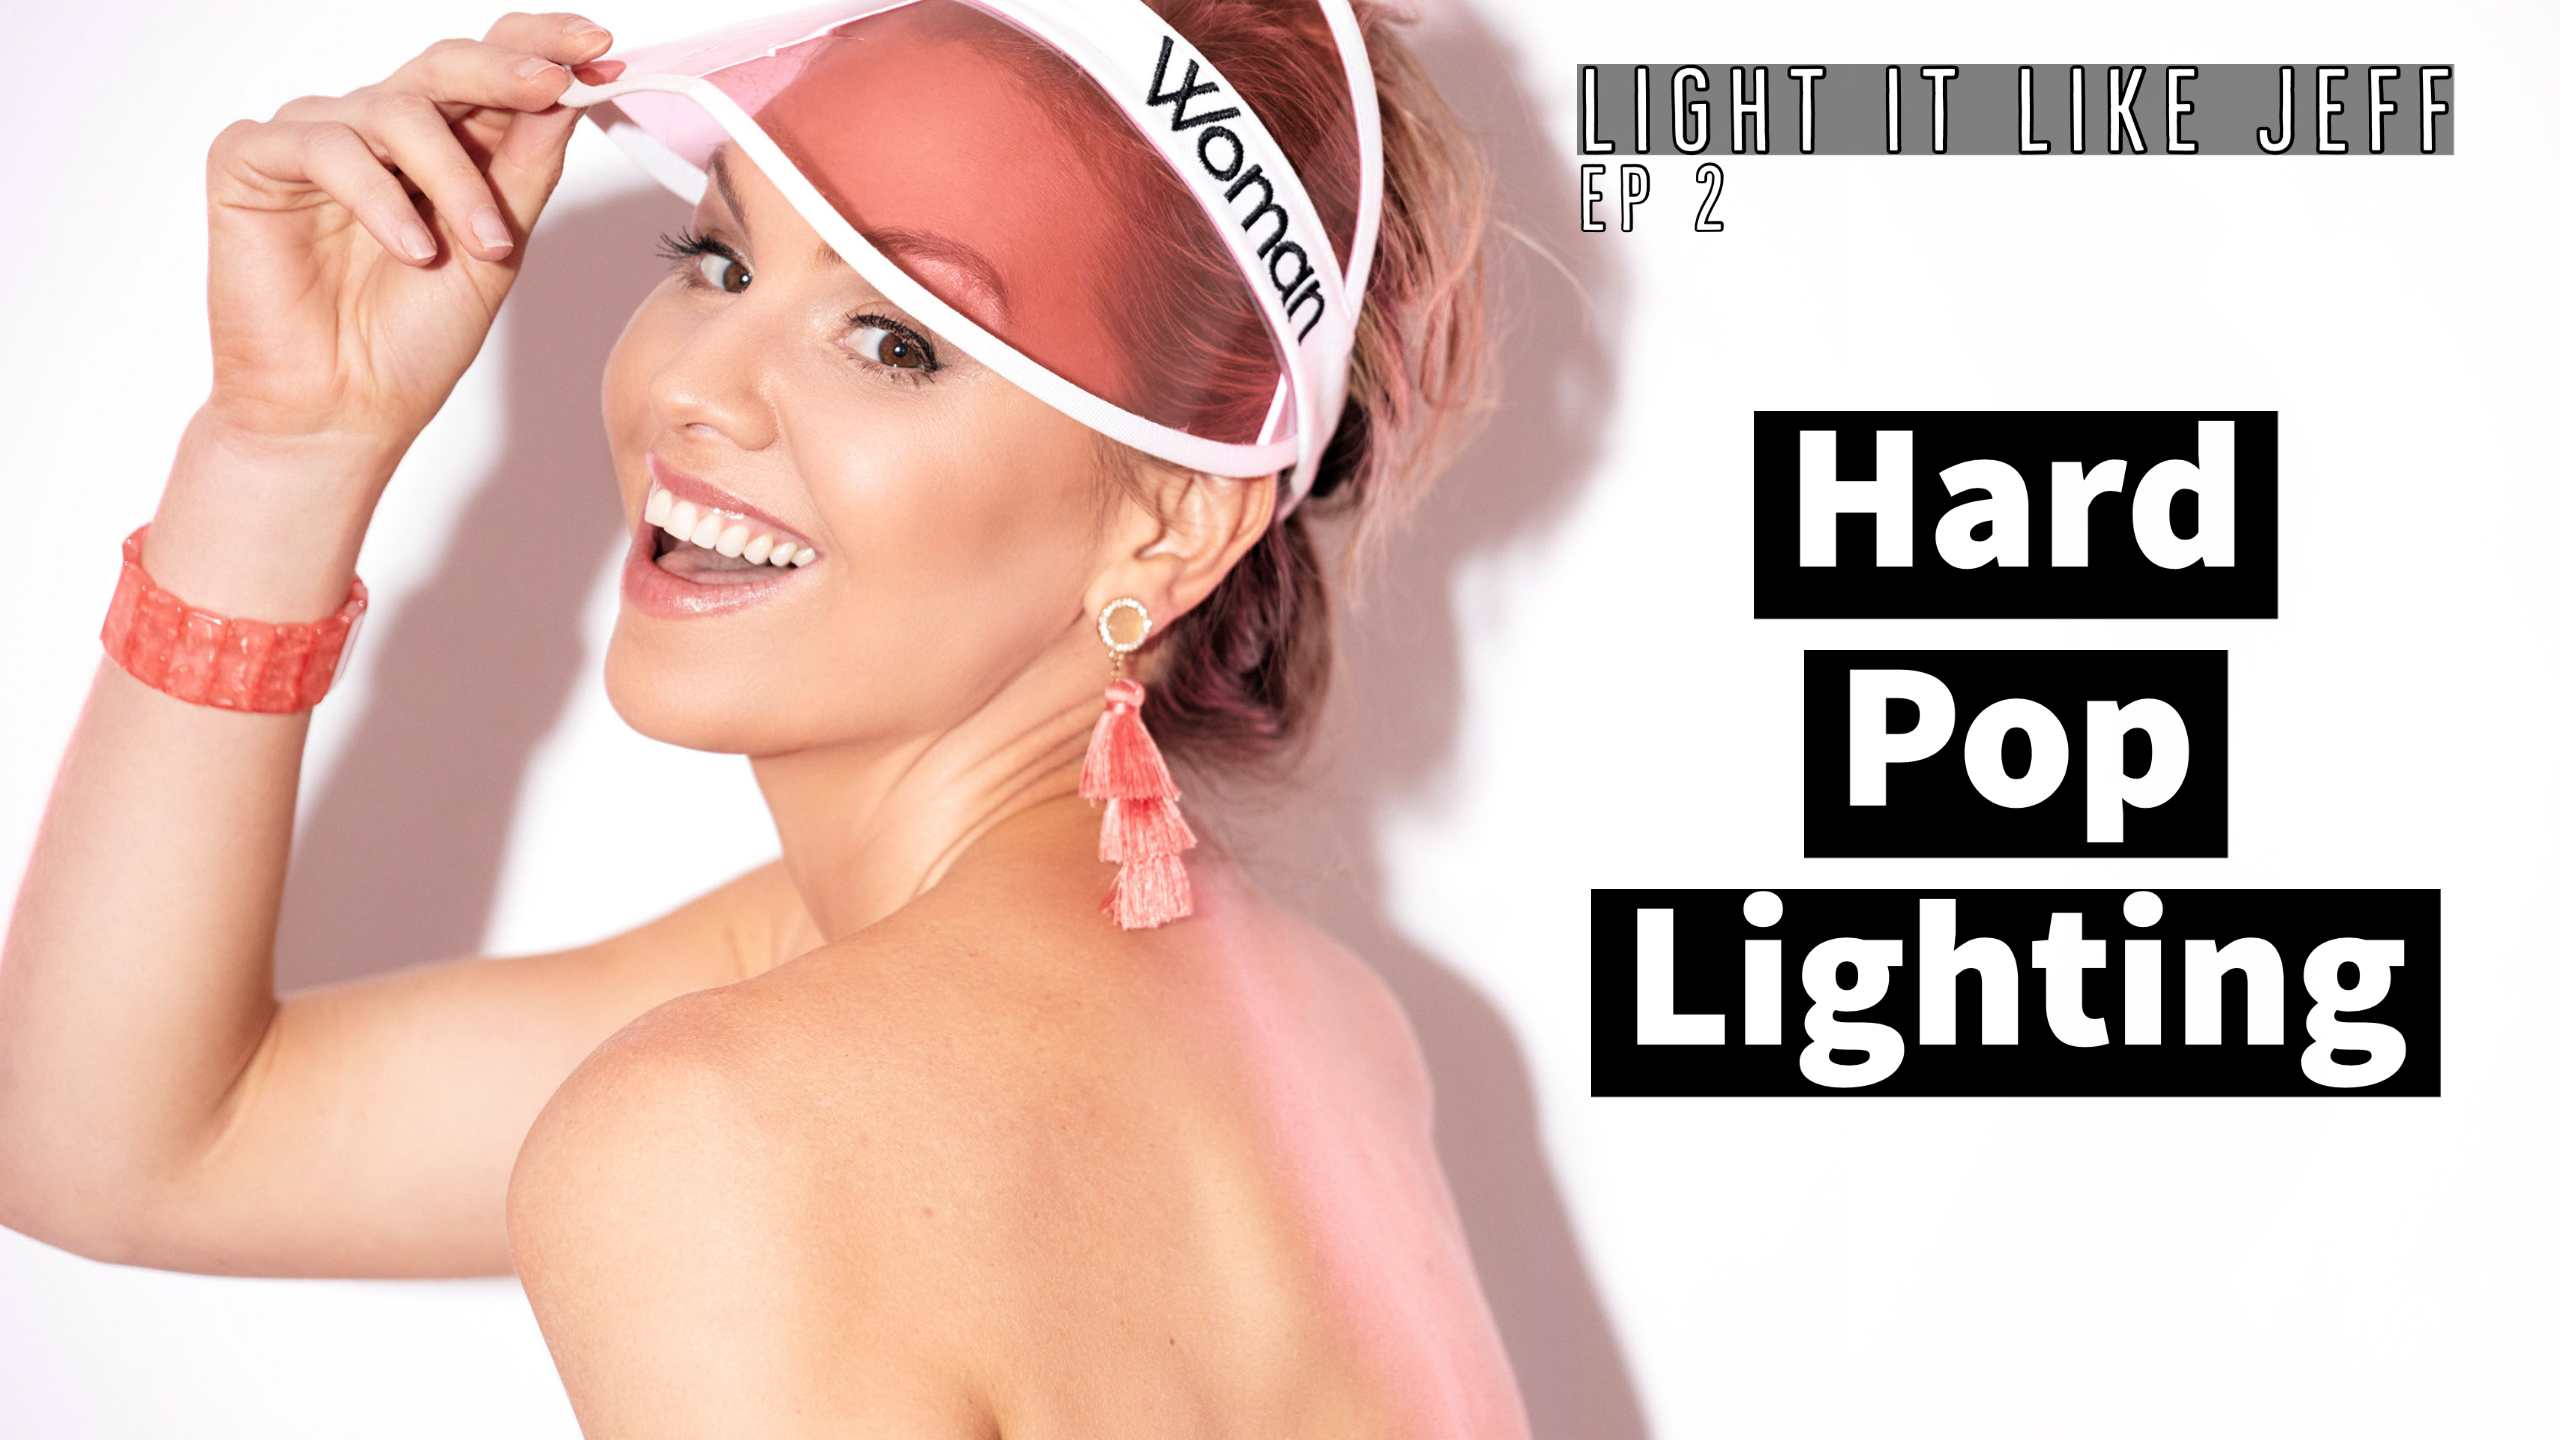 Light it like Jeff: Hard Pop Photography Lighting | EP 2